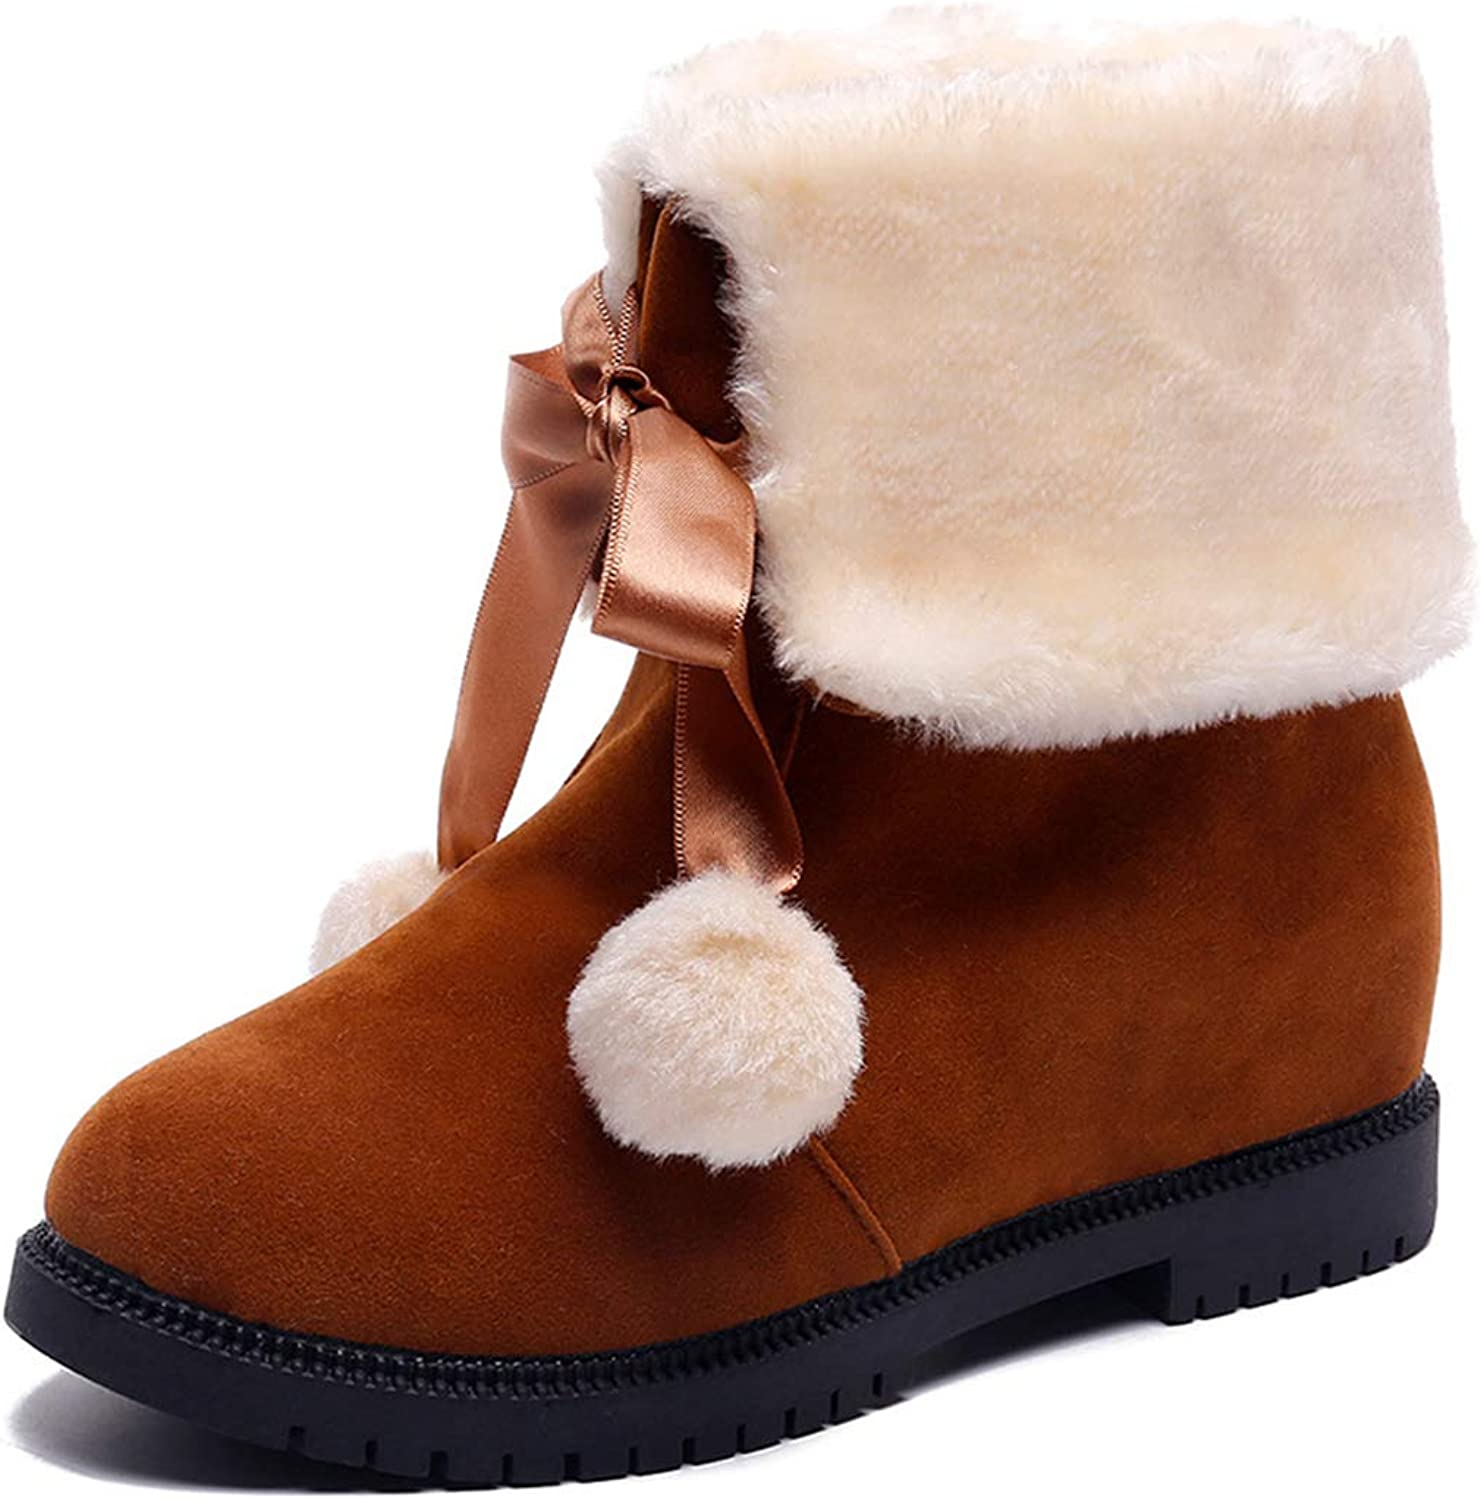 ASO-SLING Warm Mid-Calf Boots for Women Waterproof Suede Leather Non-Slip Fashion Snow Casual shoes